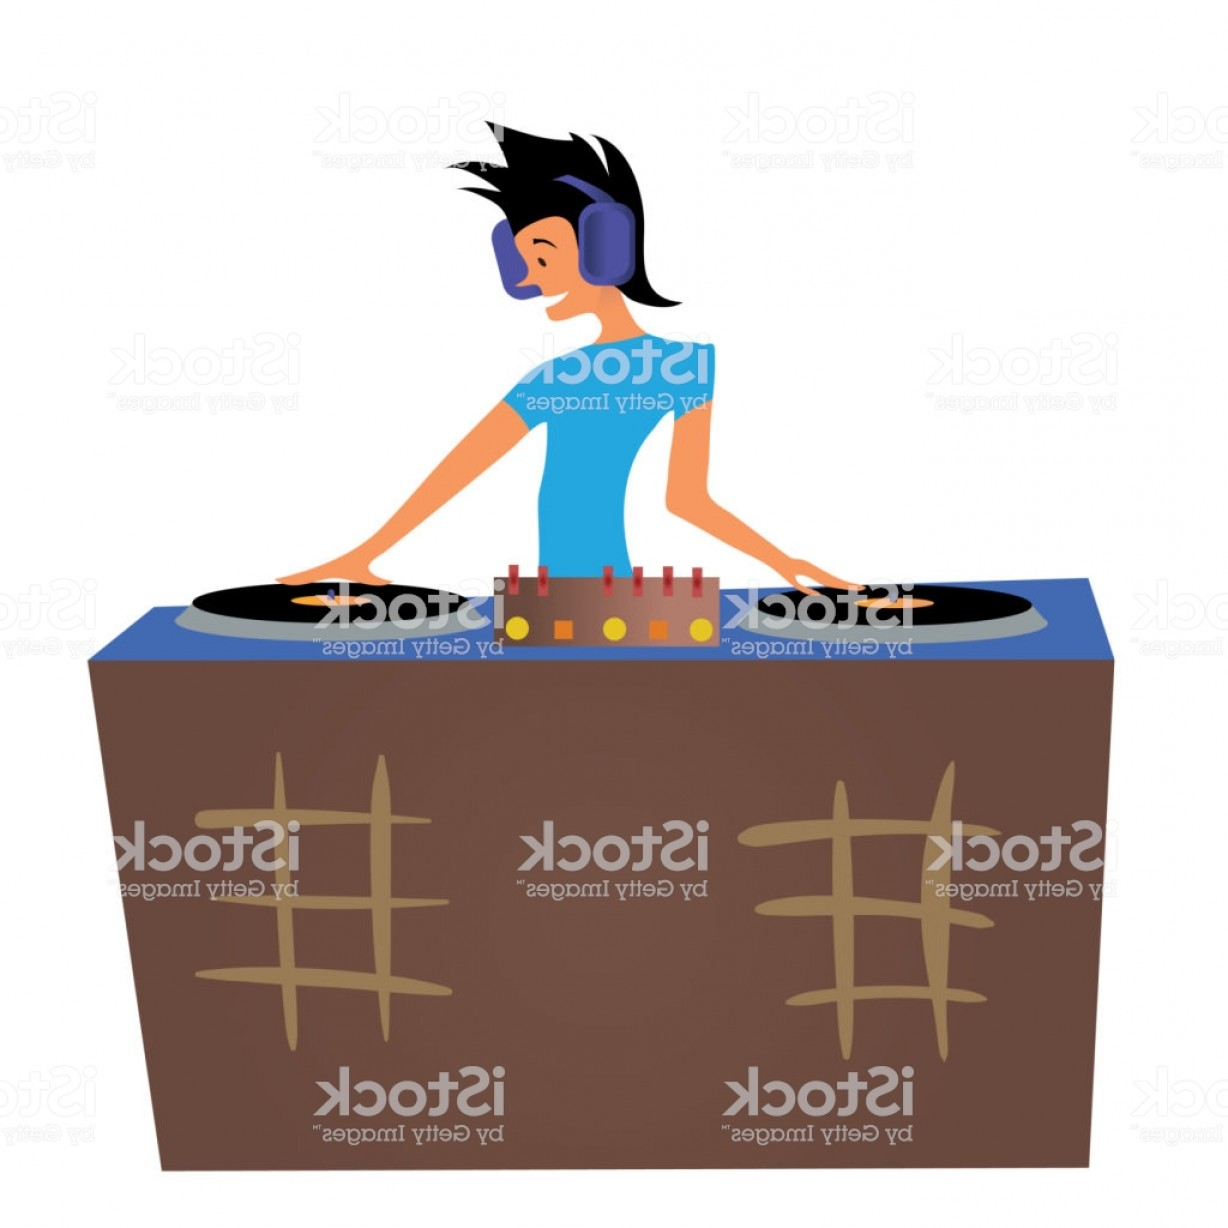 Vector DjDecks: Young Man Dj Playing Music Behind The Decks Vector Illustration Isolated On White Gm